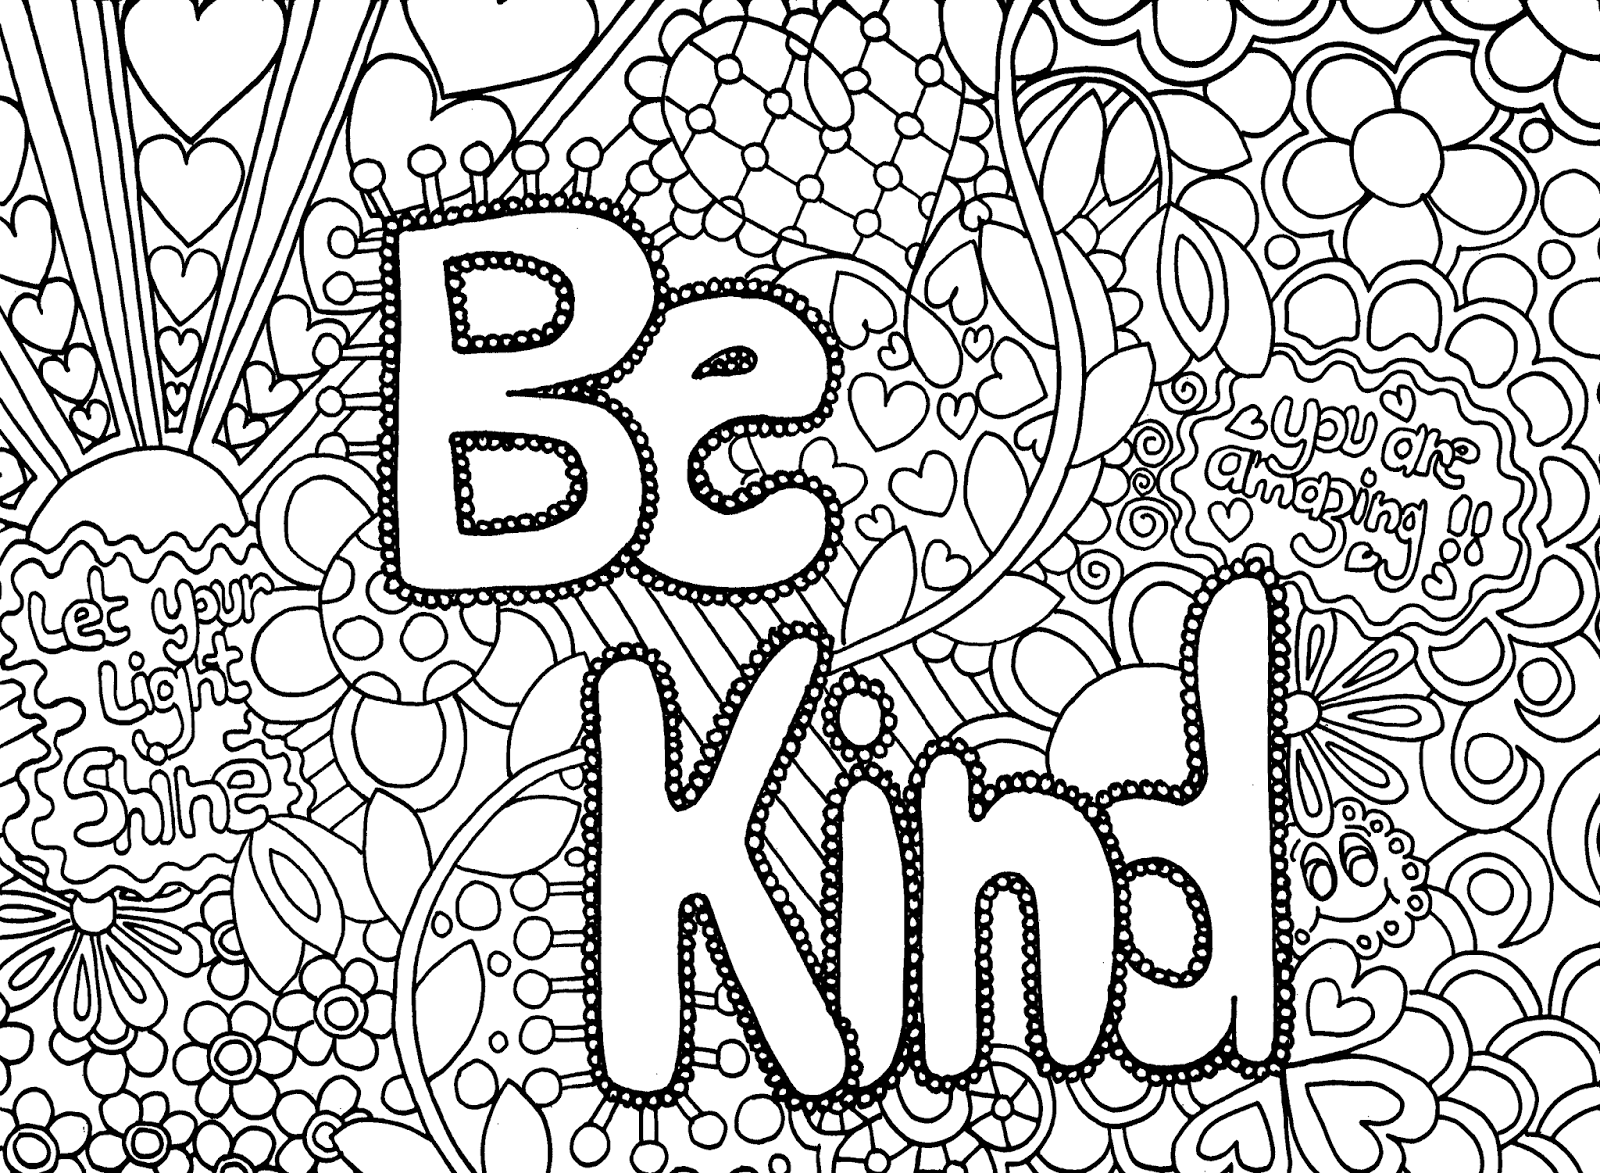 adults color childrens coloring books 10 floral adult coloring pages the graphics fairy childrens books adults color coloring